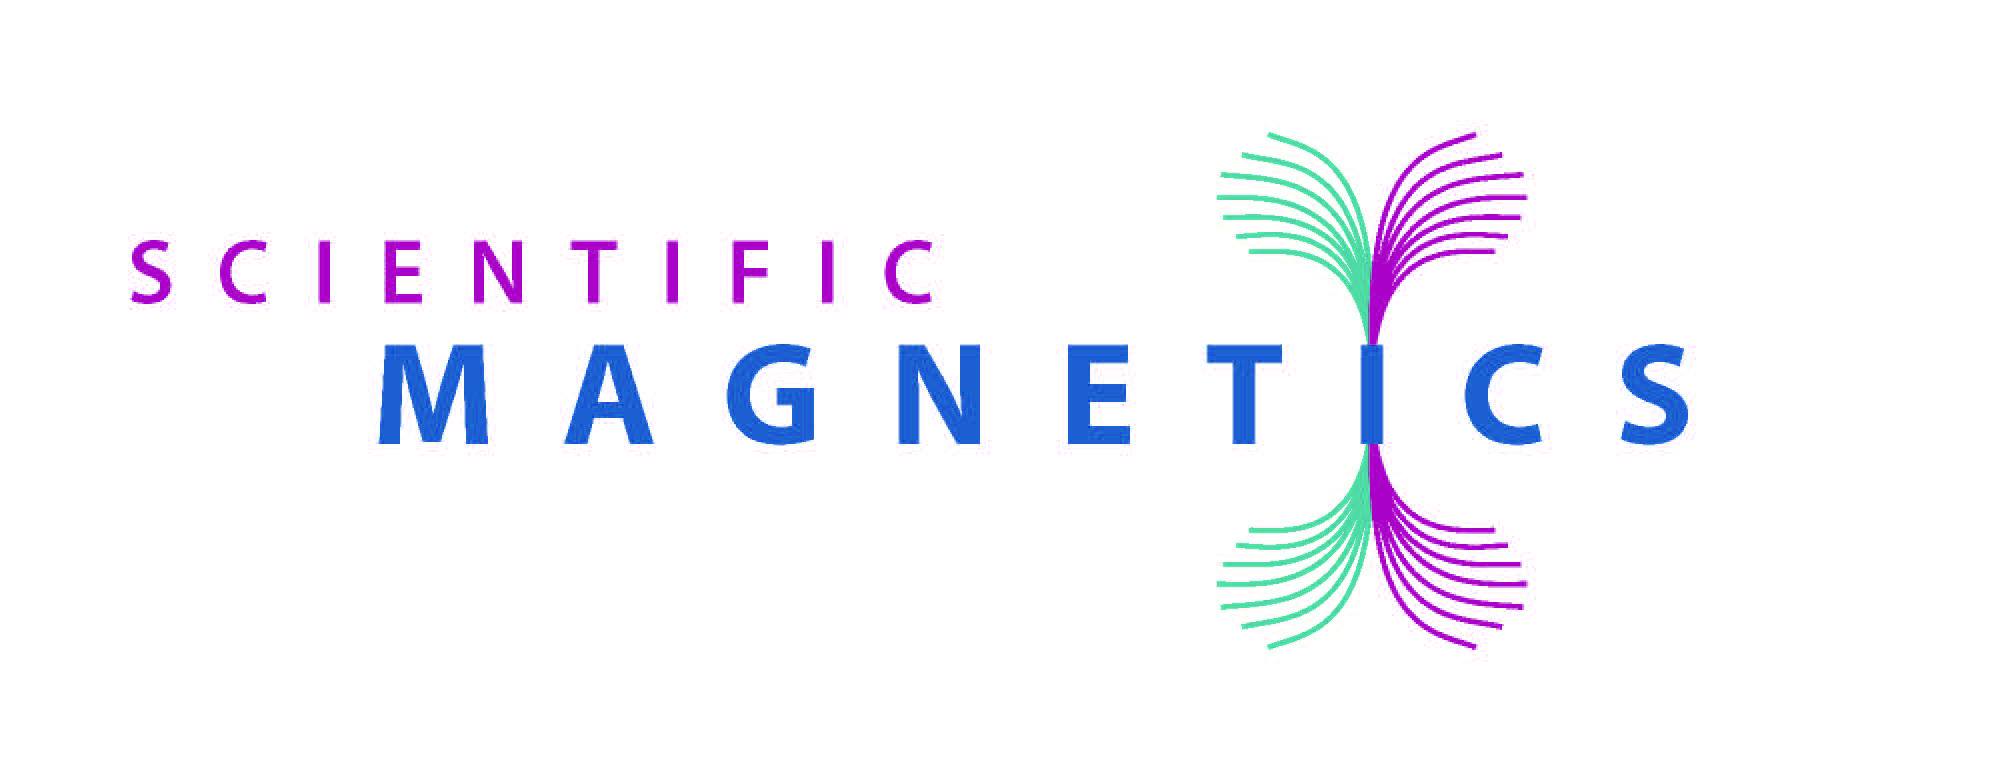 Scientific Magnetics